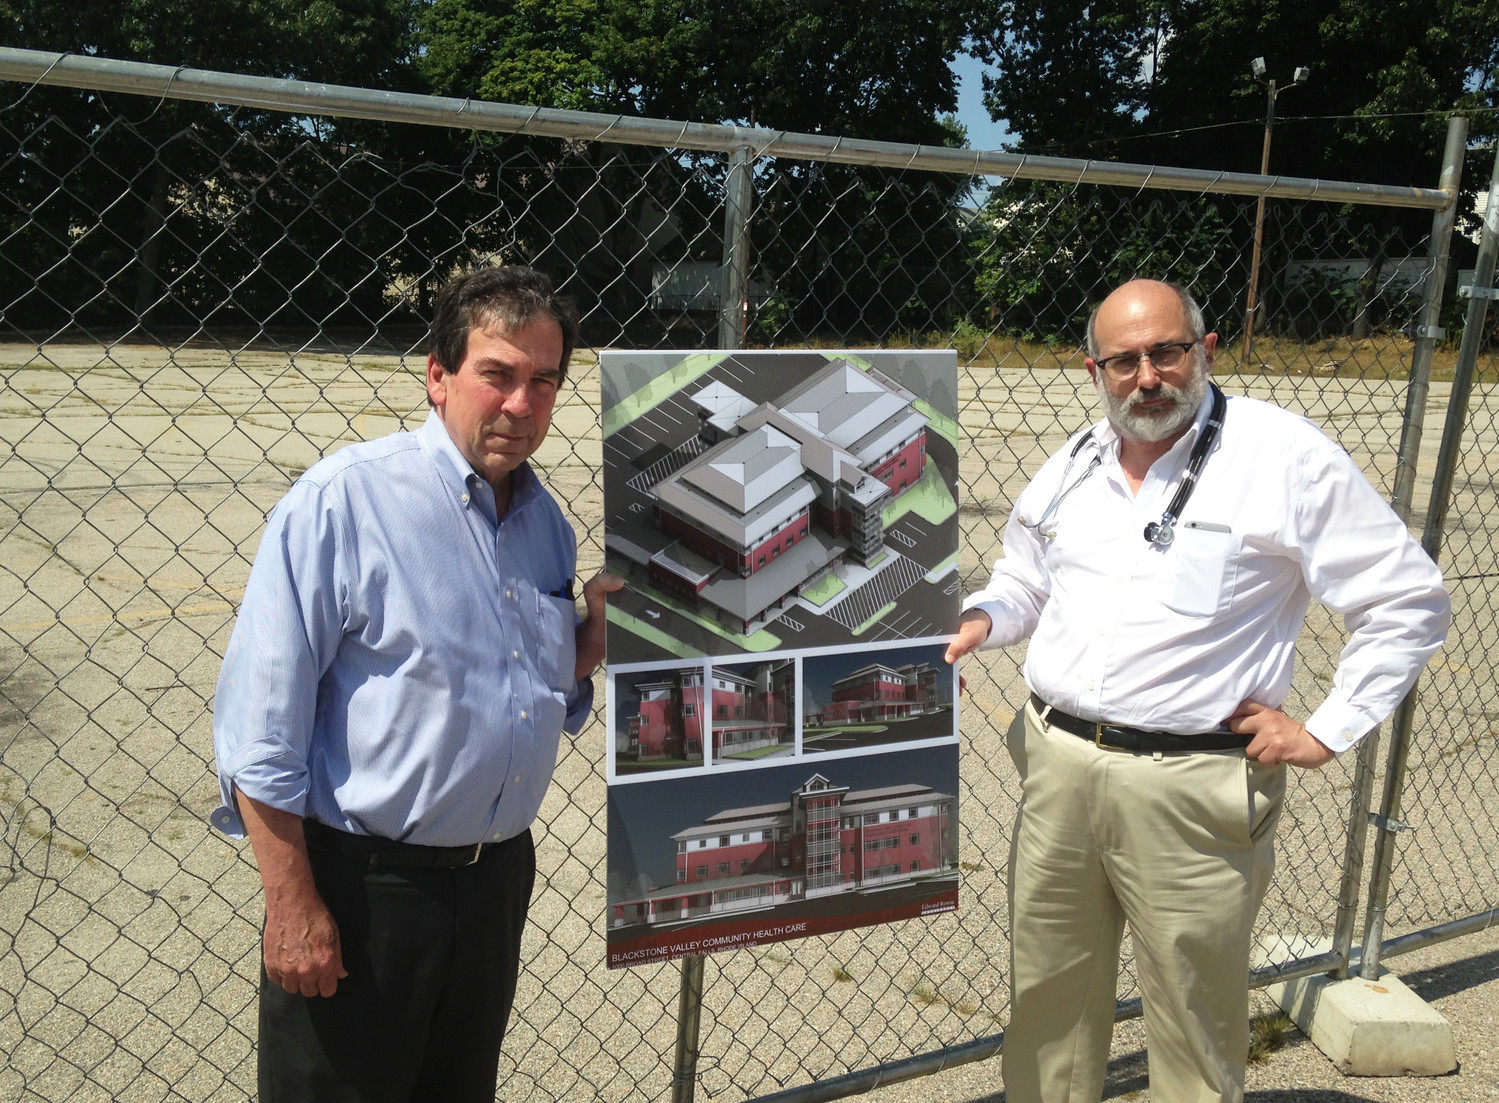 Ray Lavoie, left, the executive director of Blackstone Valley Community Health Care, and Dr. Michael Fine, senior clinical and population health officer at Blackstone Valley, at the site of the Neighborhood Health Station in Central Falls. Construction is almost completed now, with an opening scheduled for this fall.